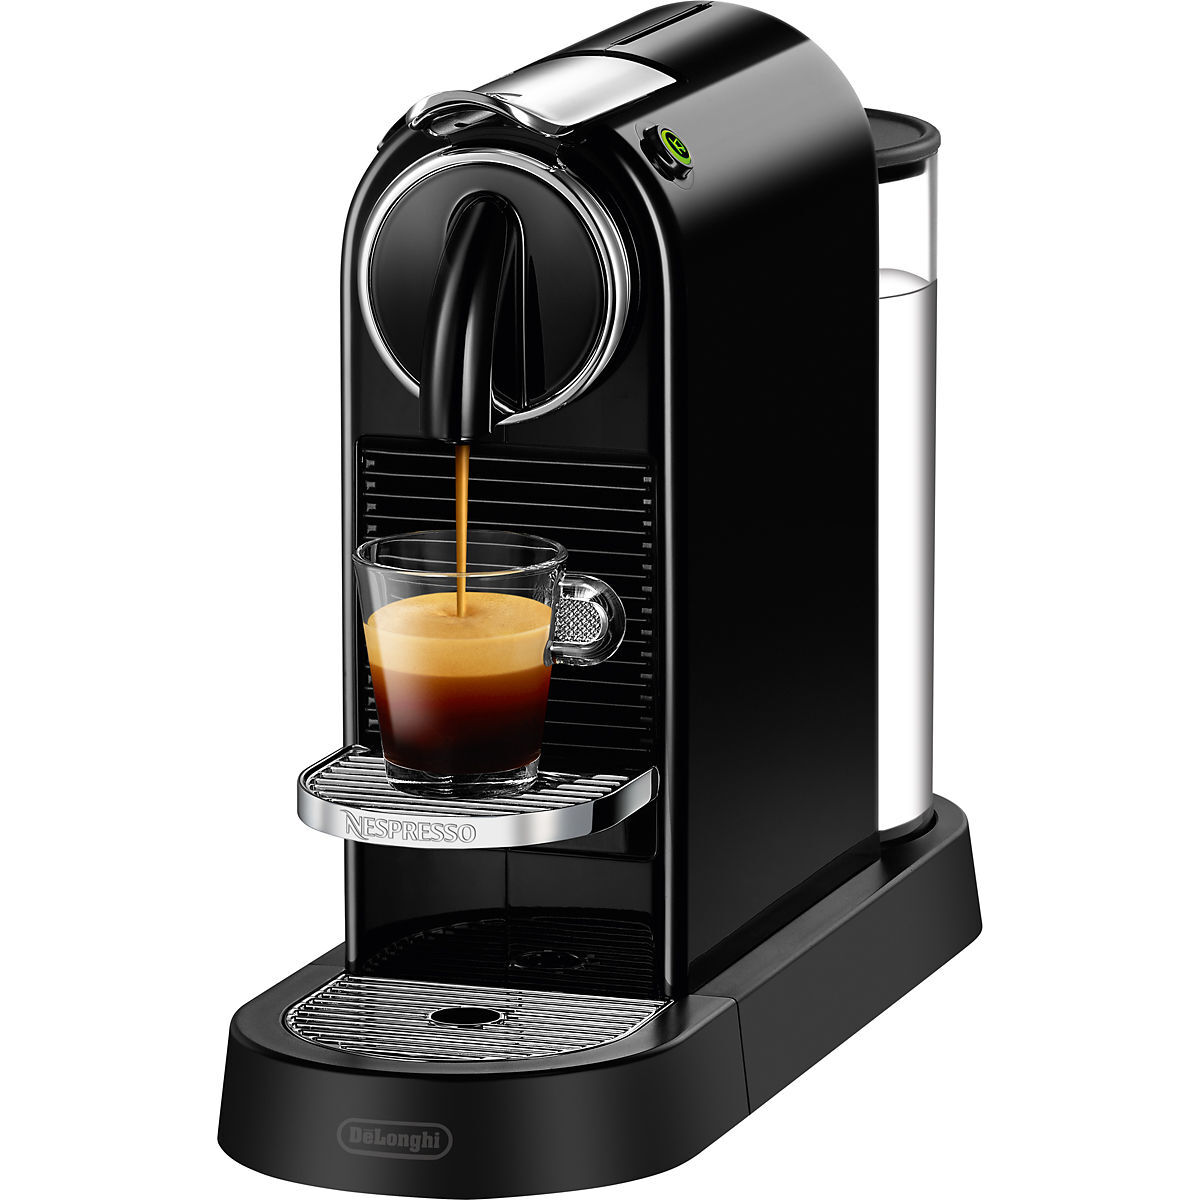 Online shopping for Nespresso from a great selection at Home & Kitchen Store.